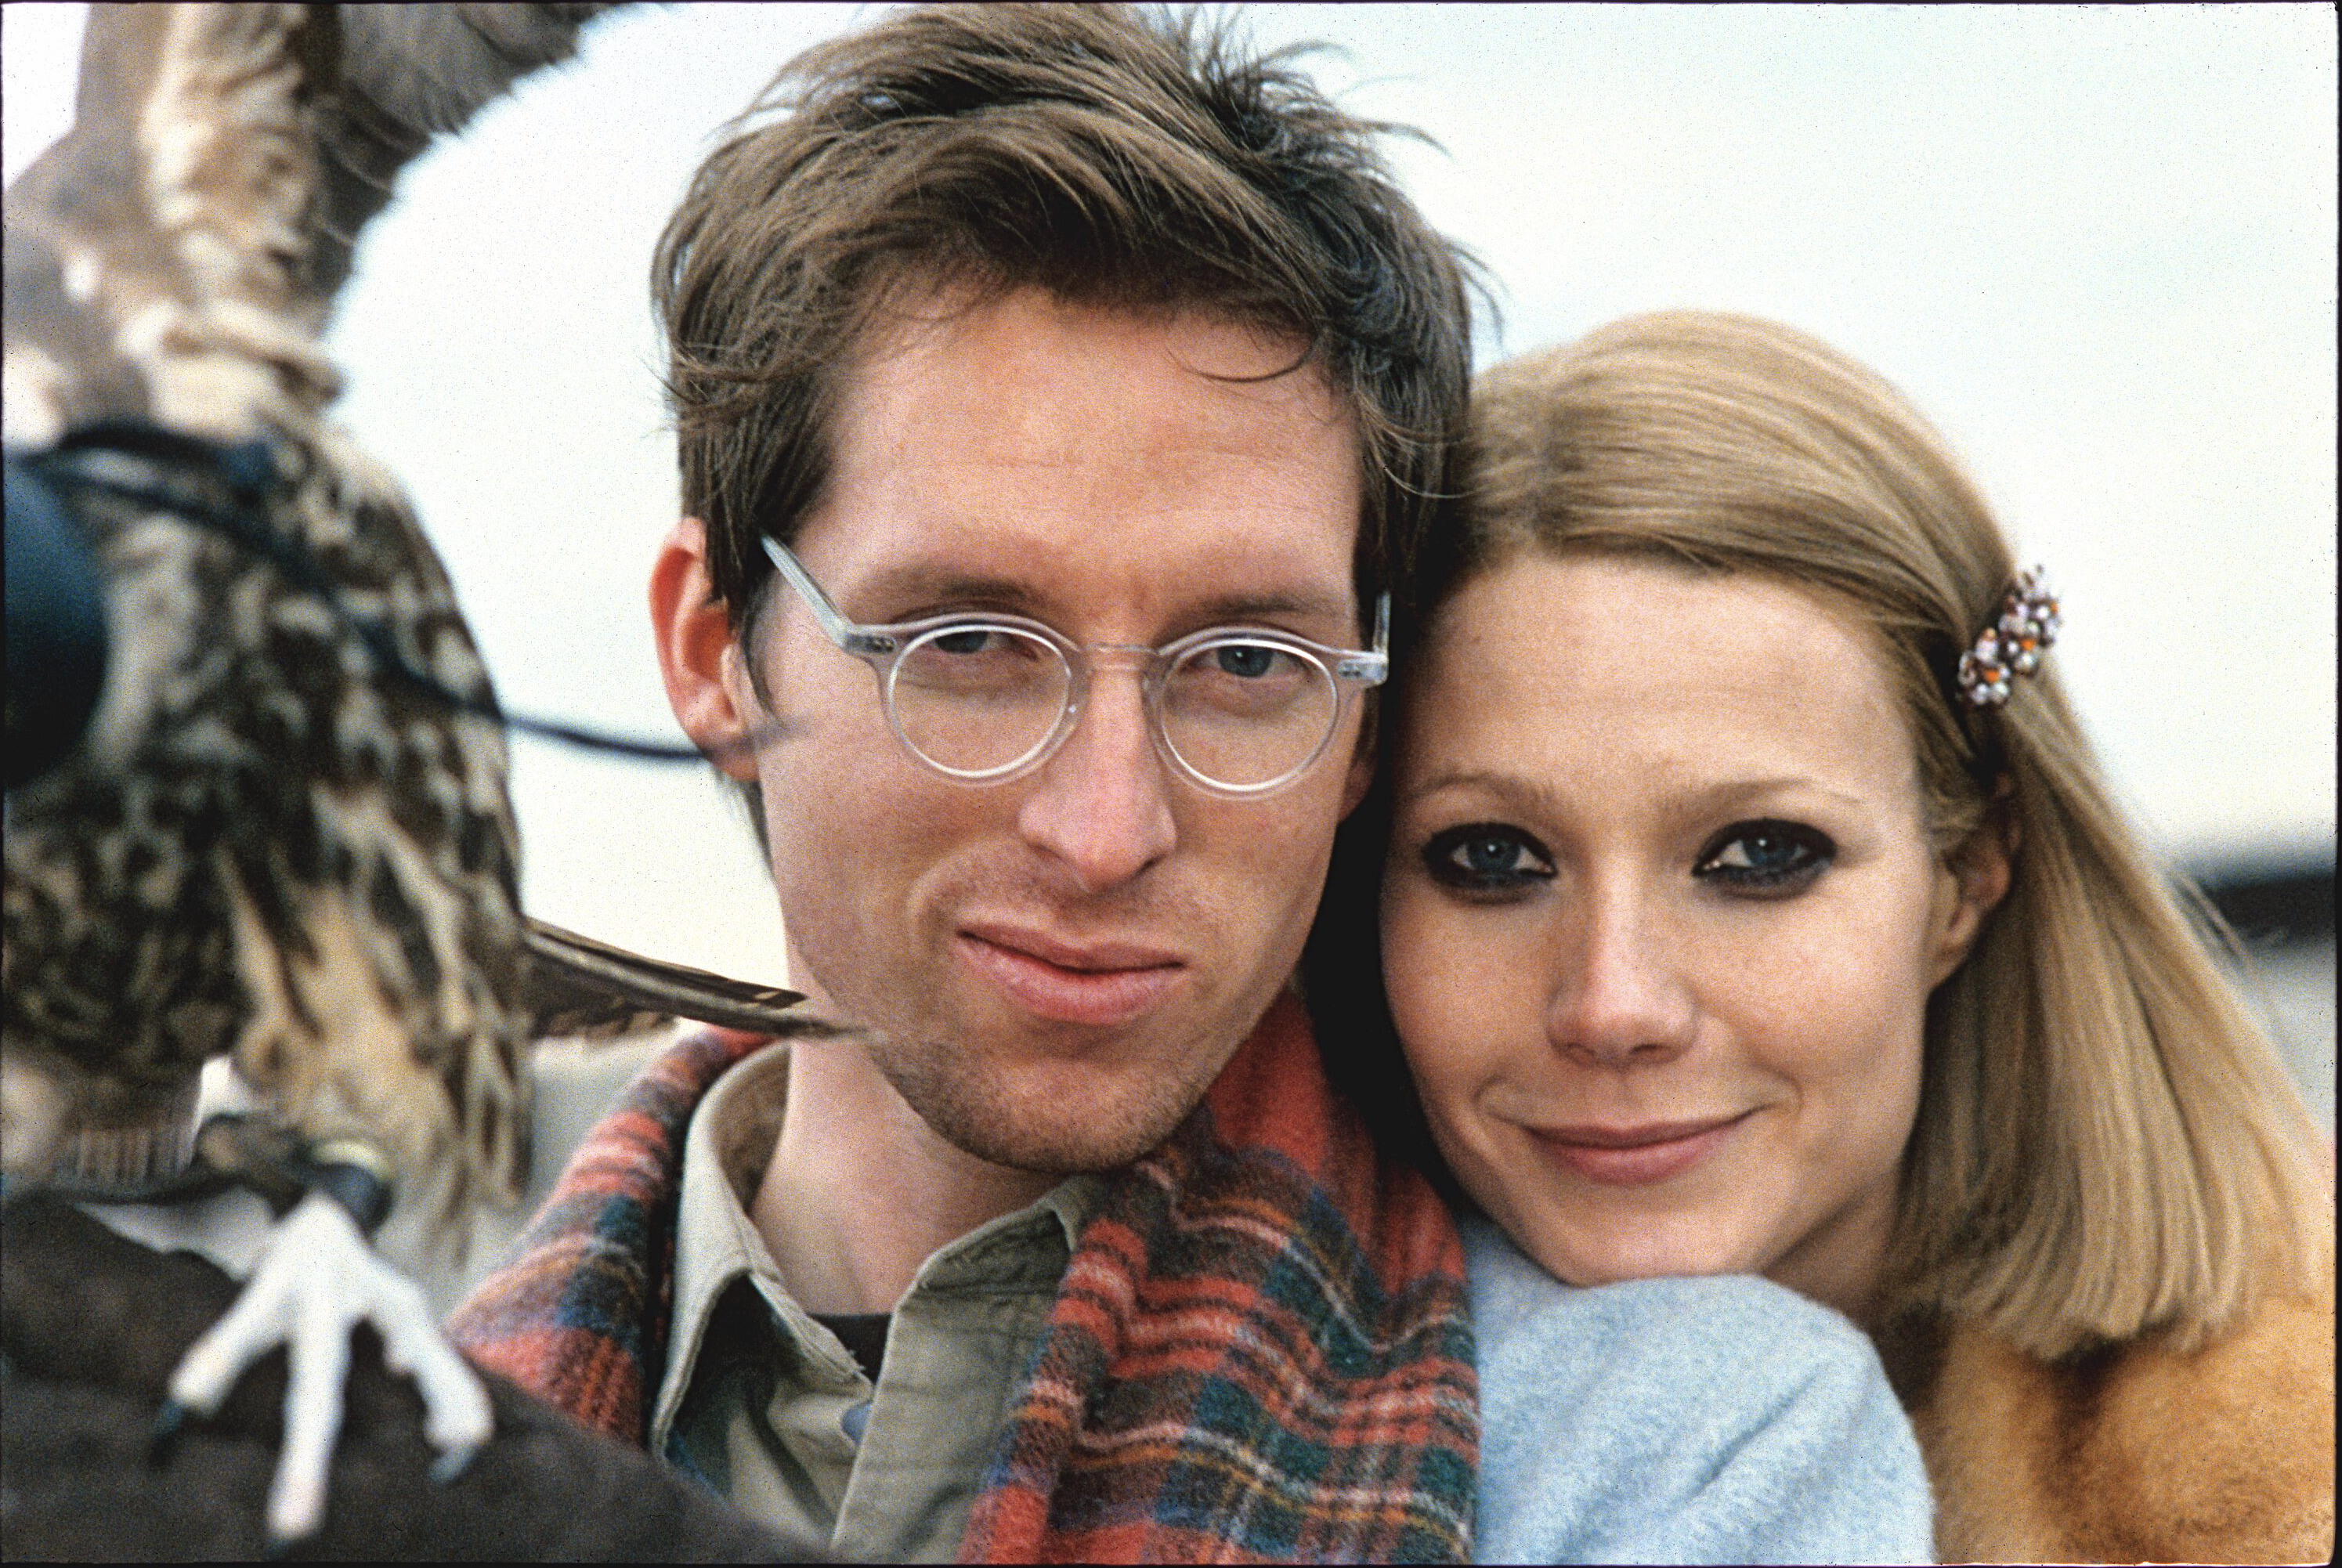 Wes Anderson and Gwyneth Paltrow on set of Royal Tenenbaums, New York, New York, 2001